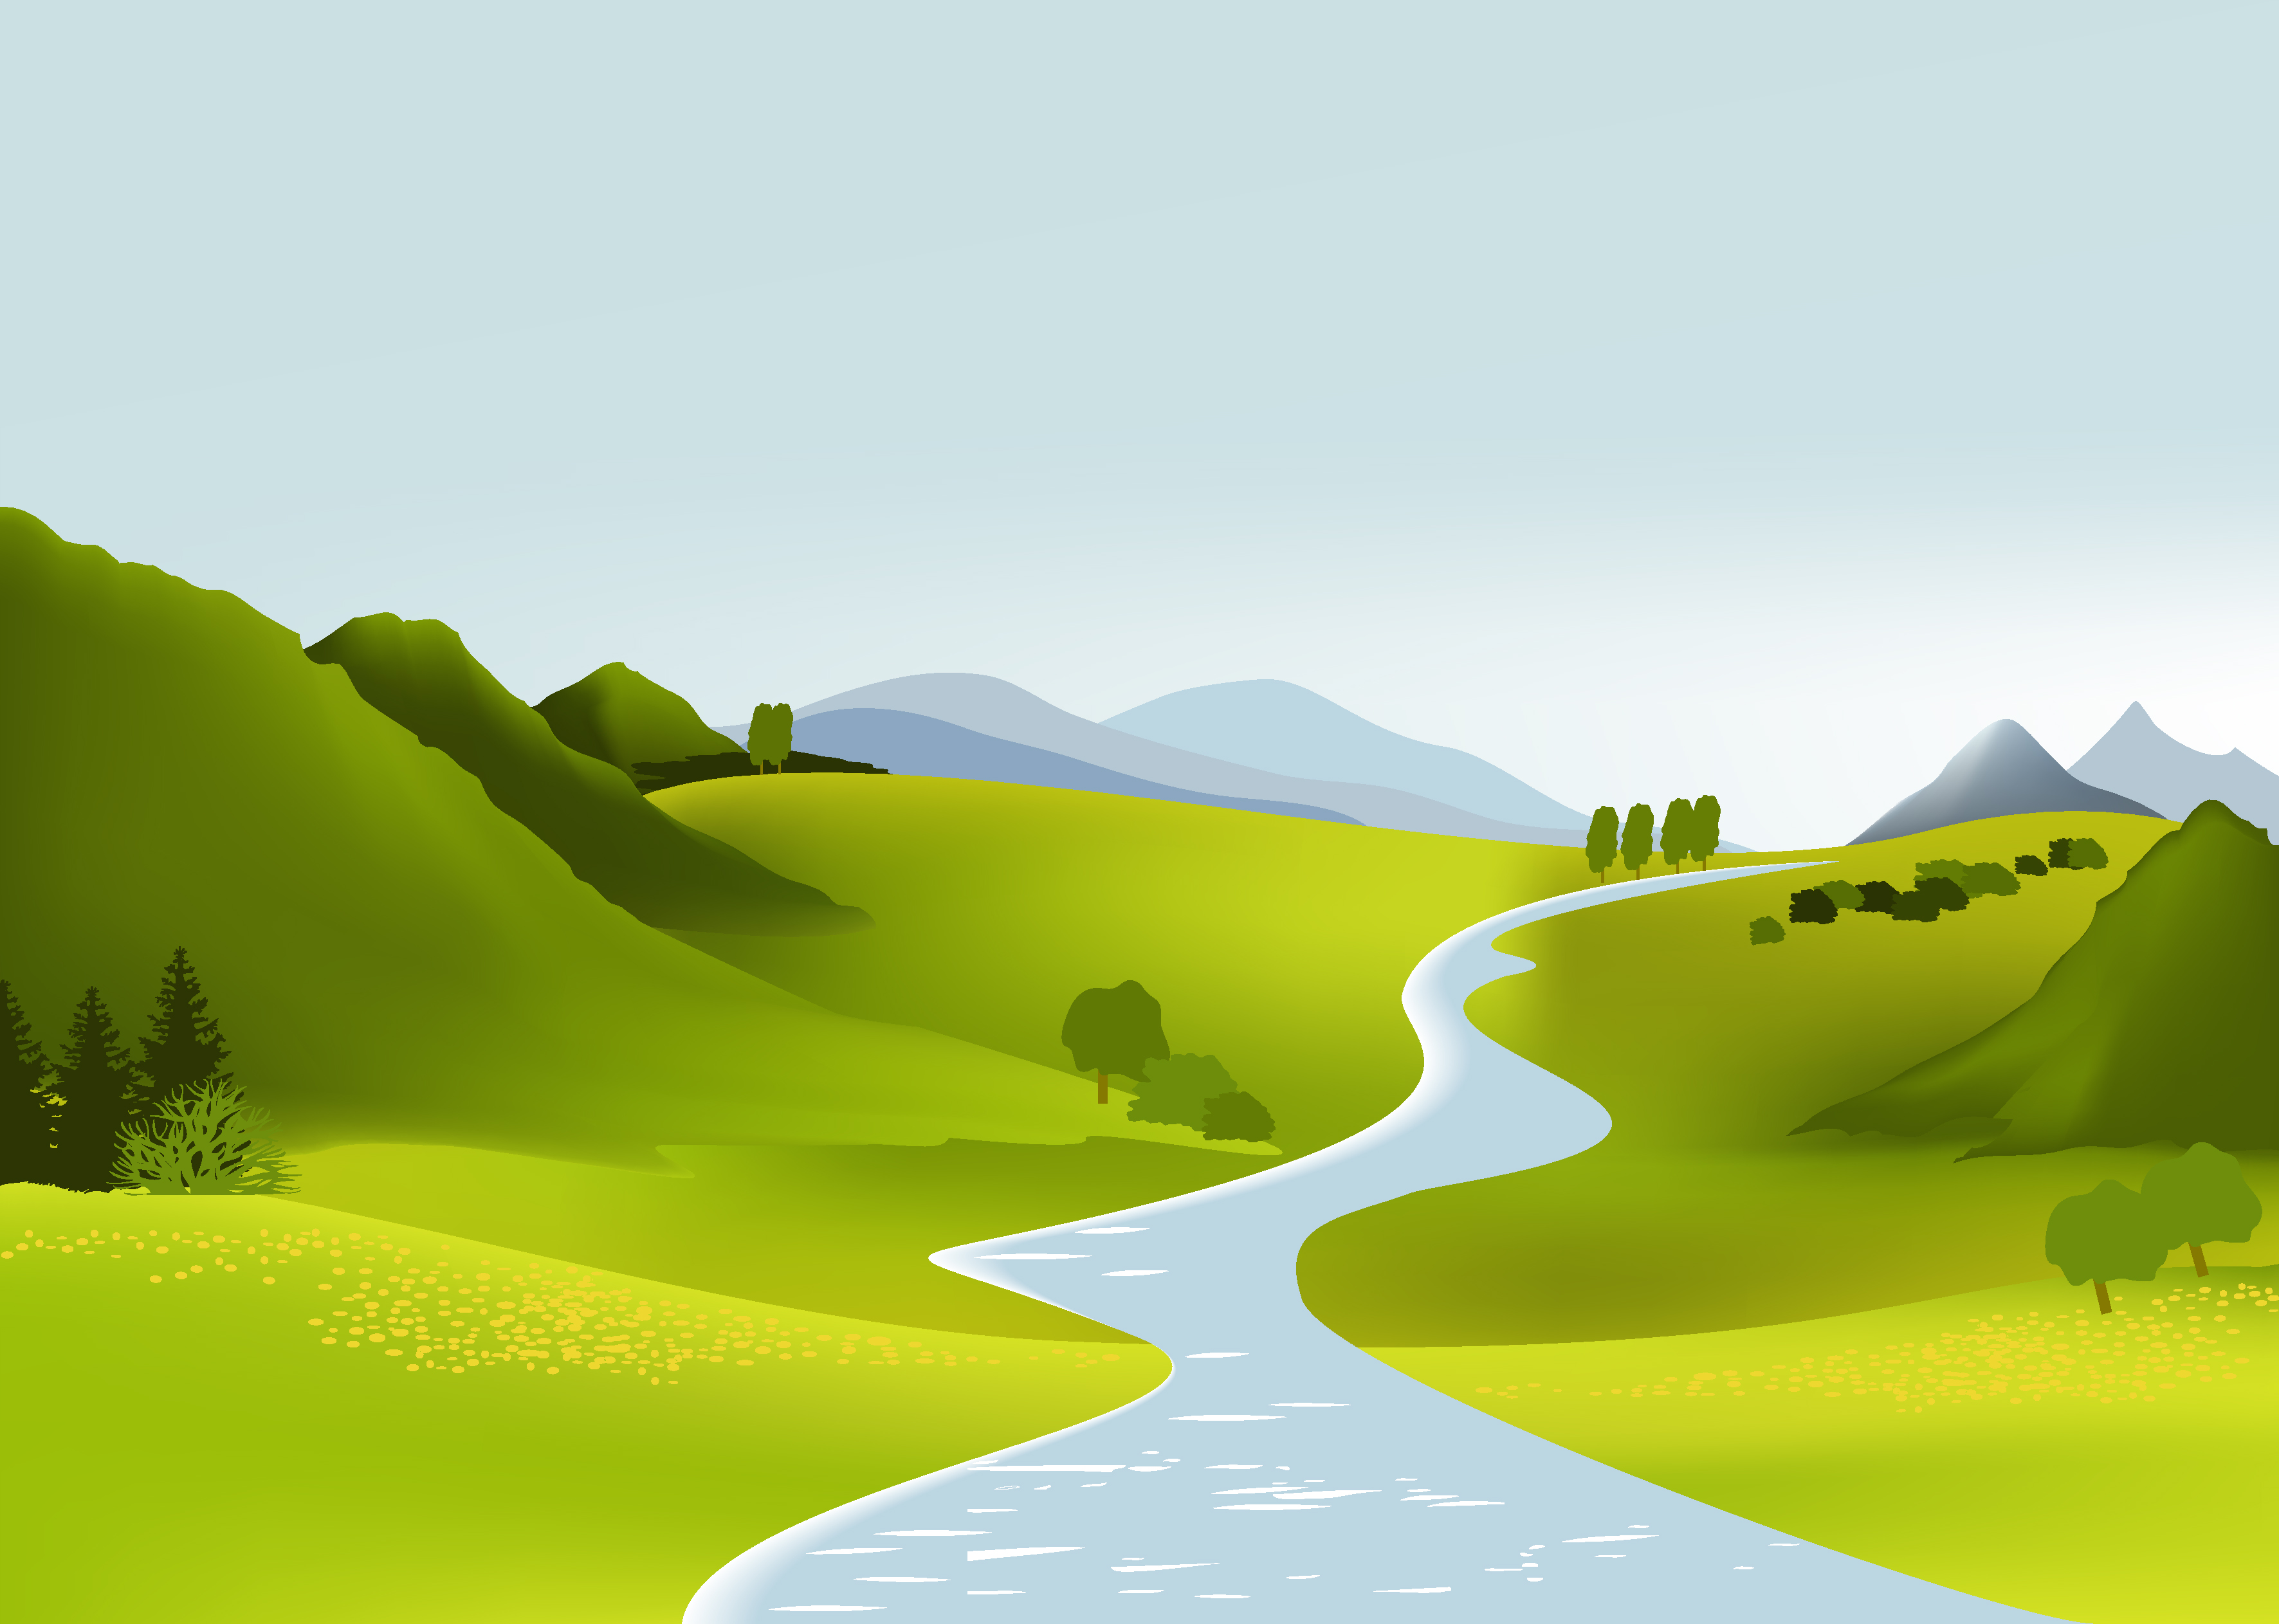 12 Free Vector Cartoon Landscape Images